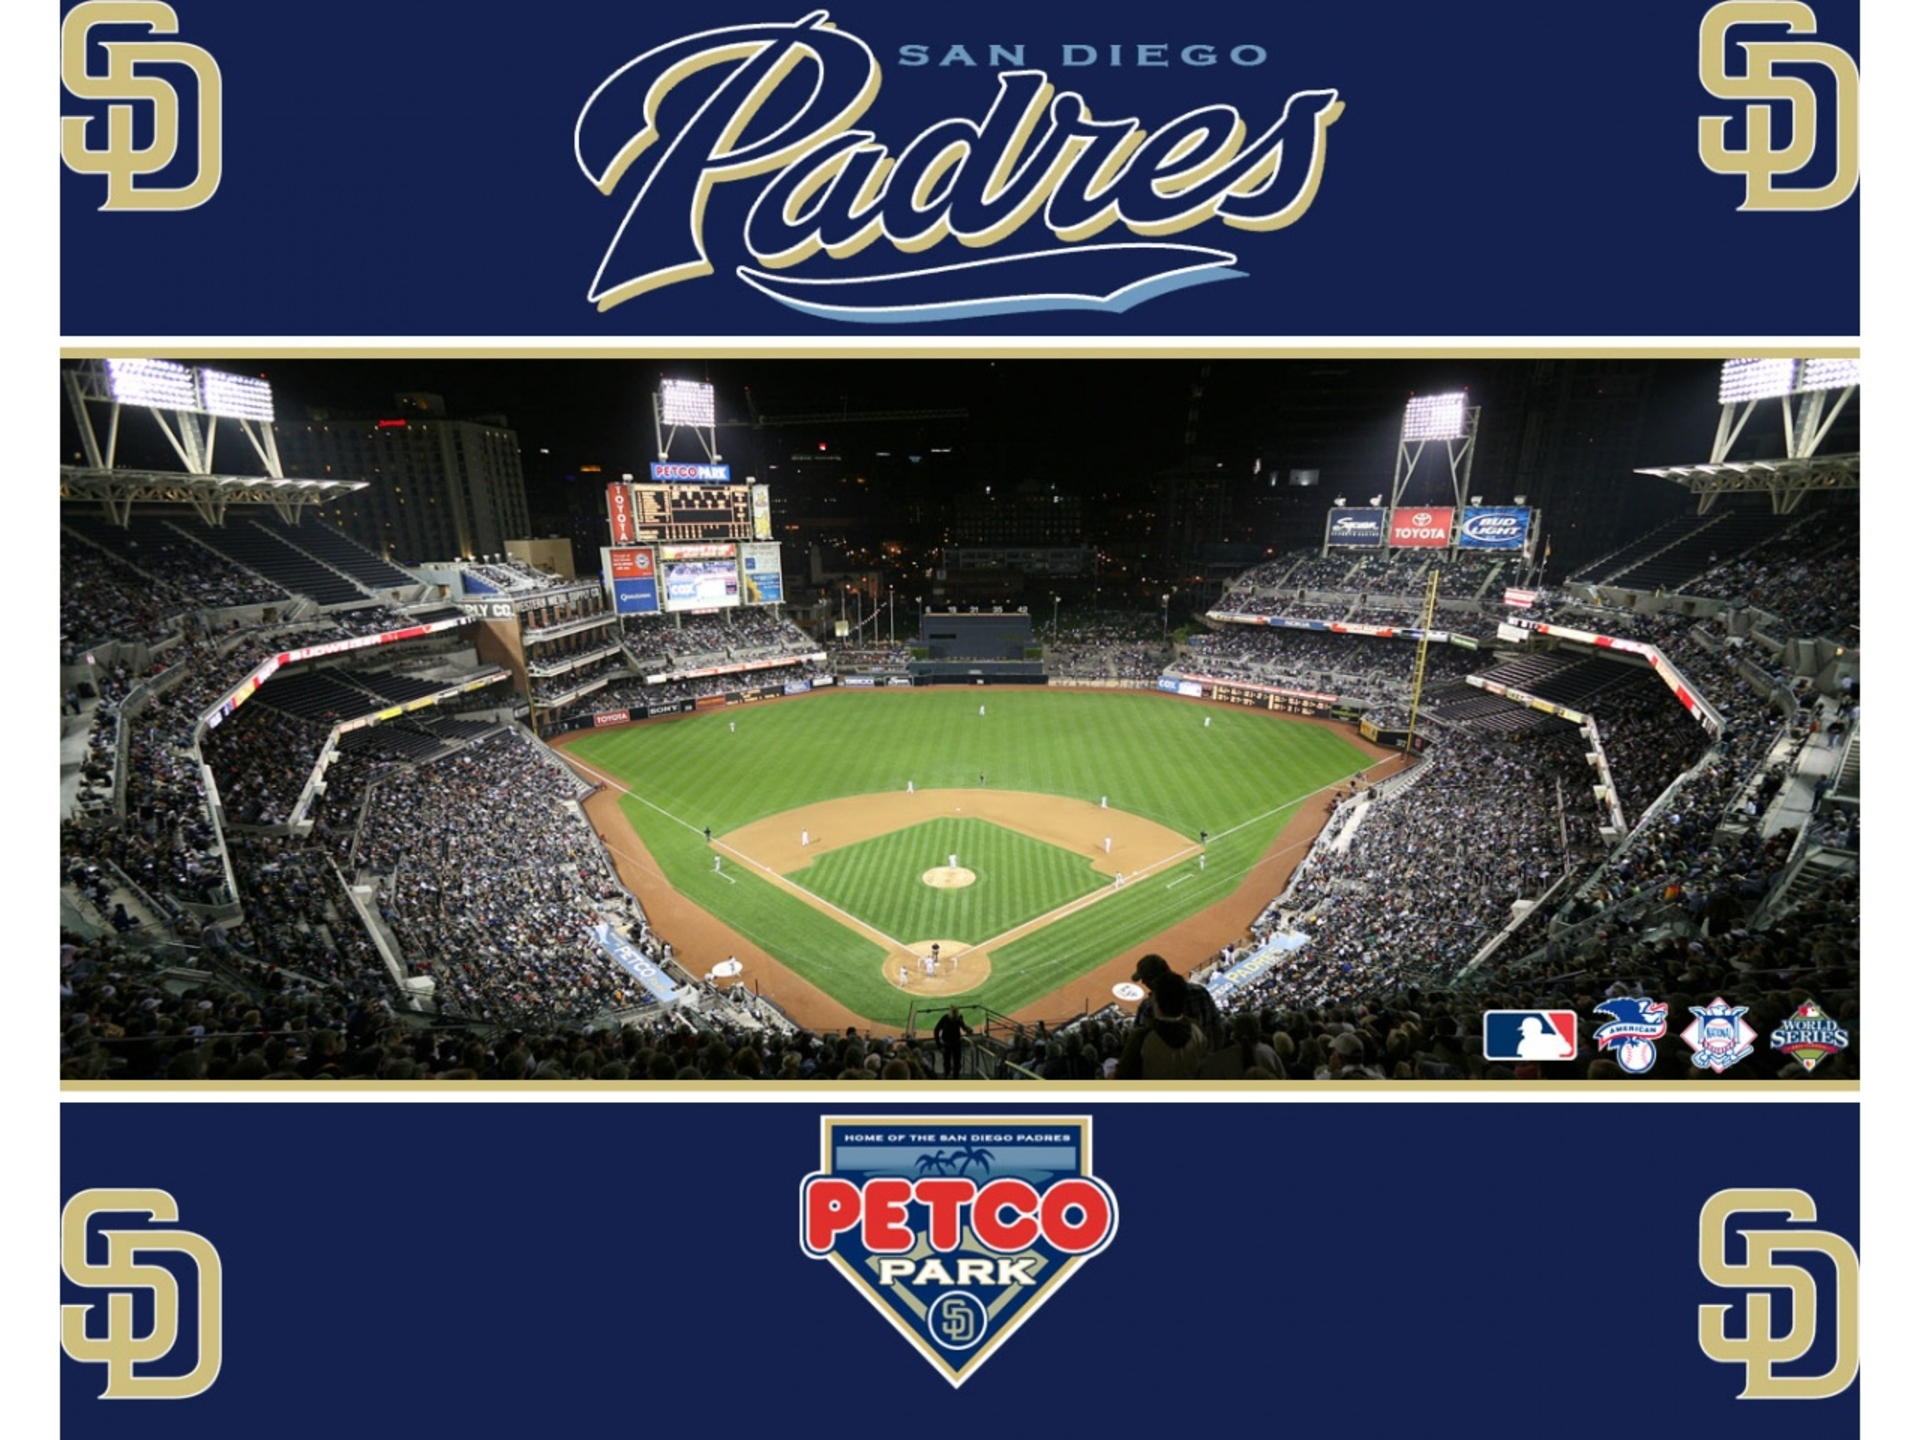 SAN DIEGO PADRES mlb baseball 21 wallpaper background 1920x1440